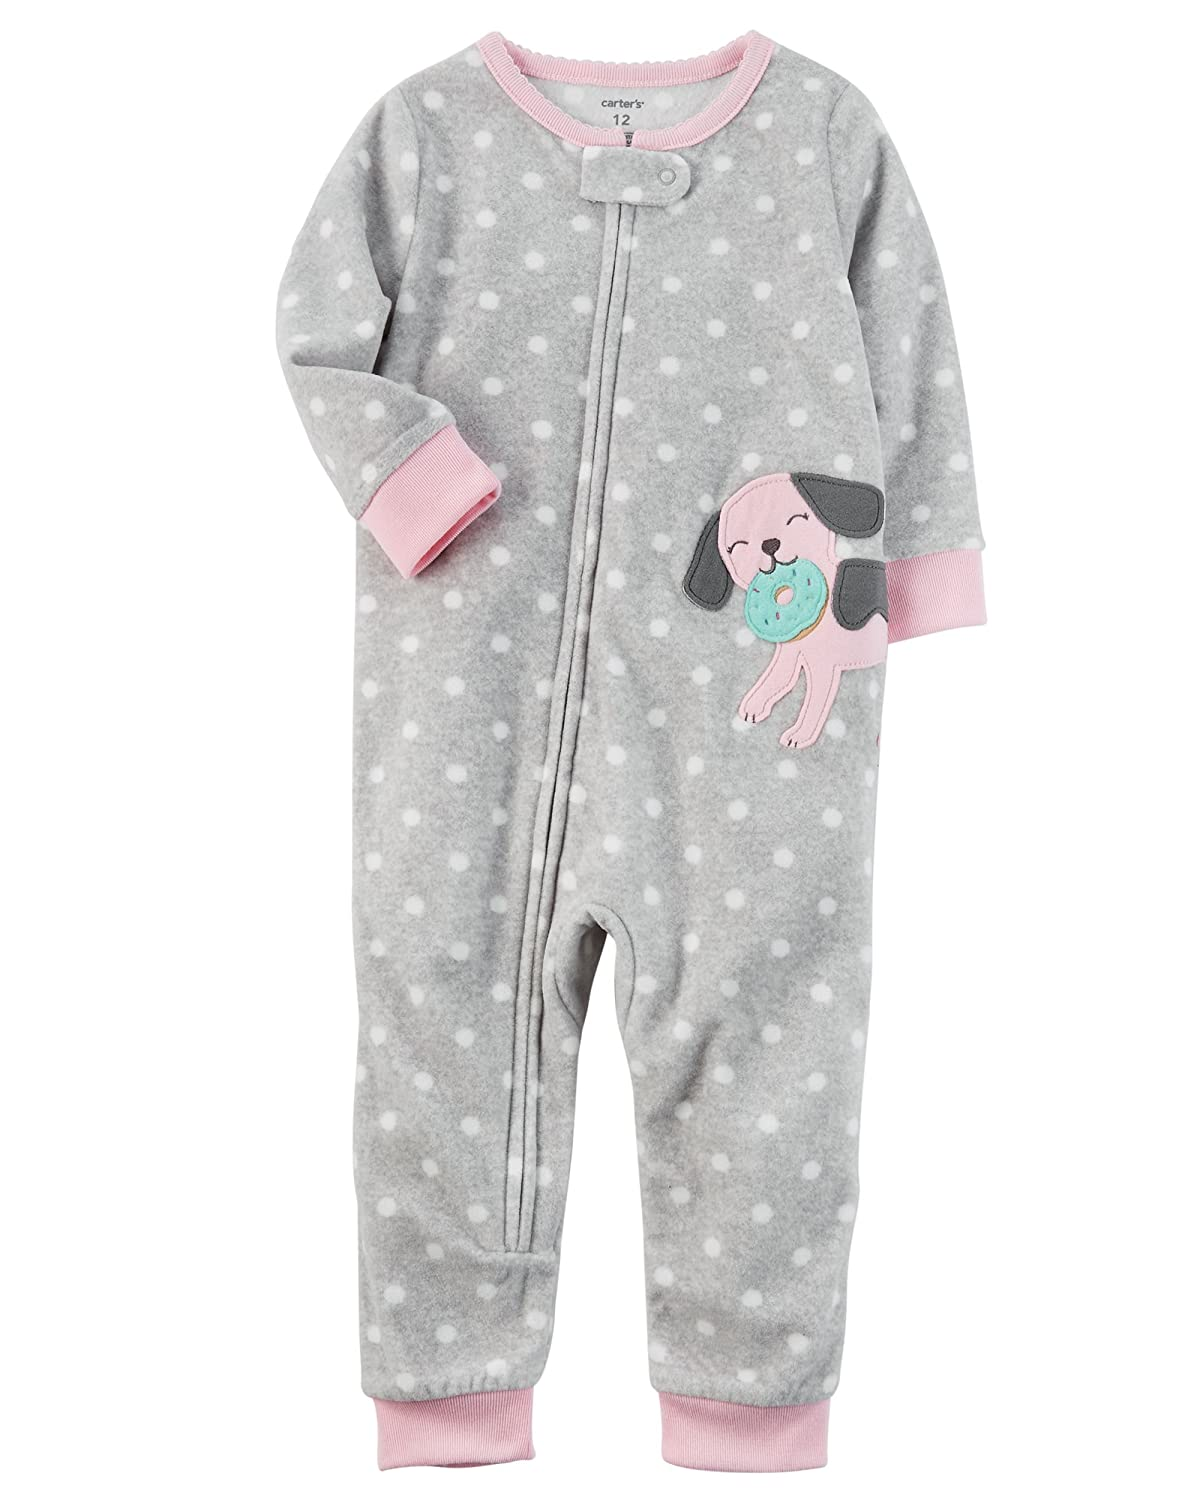 4349f06ca Amazon.com  Carter s Girls  1-Piece Footless Fleece PJs  Clothing